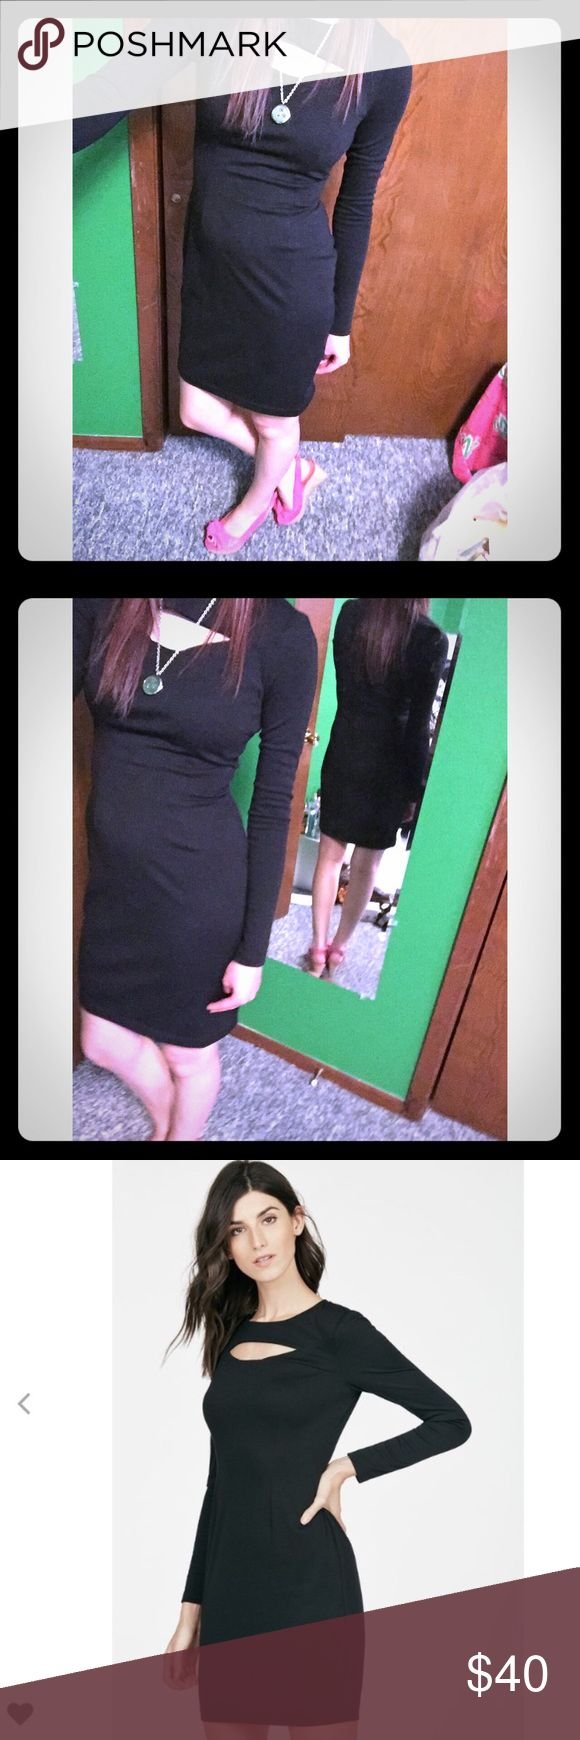 Sexy black dress with cutout I am selling this super sexy black dress with a chest cutout. The dress is NWOT and is in perfection condition. The dress is an XS, but fits more like a small. It shows off your curves and enhances them. Perfect for a date night or a special occasion! Dresses Midi